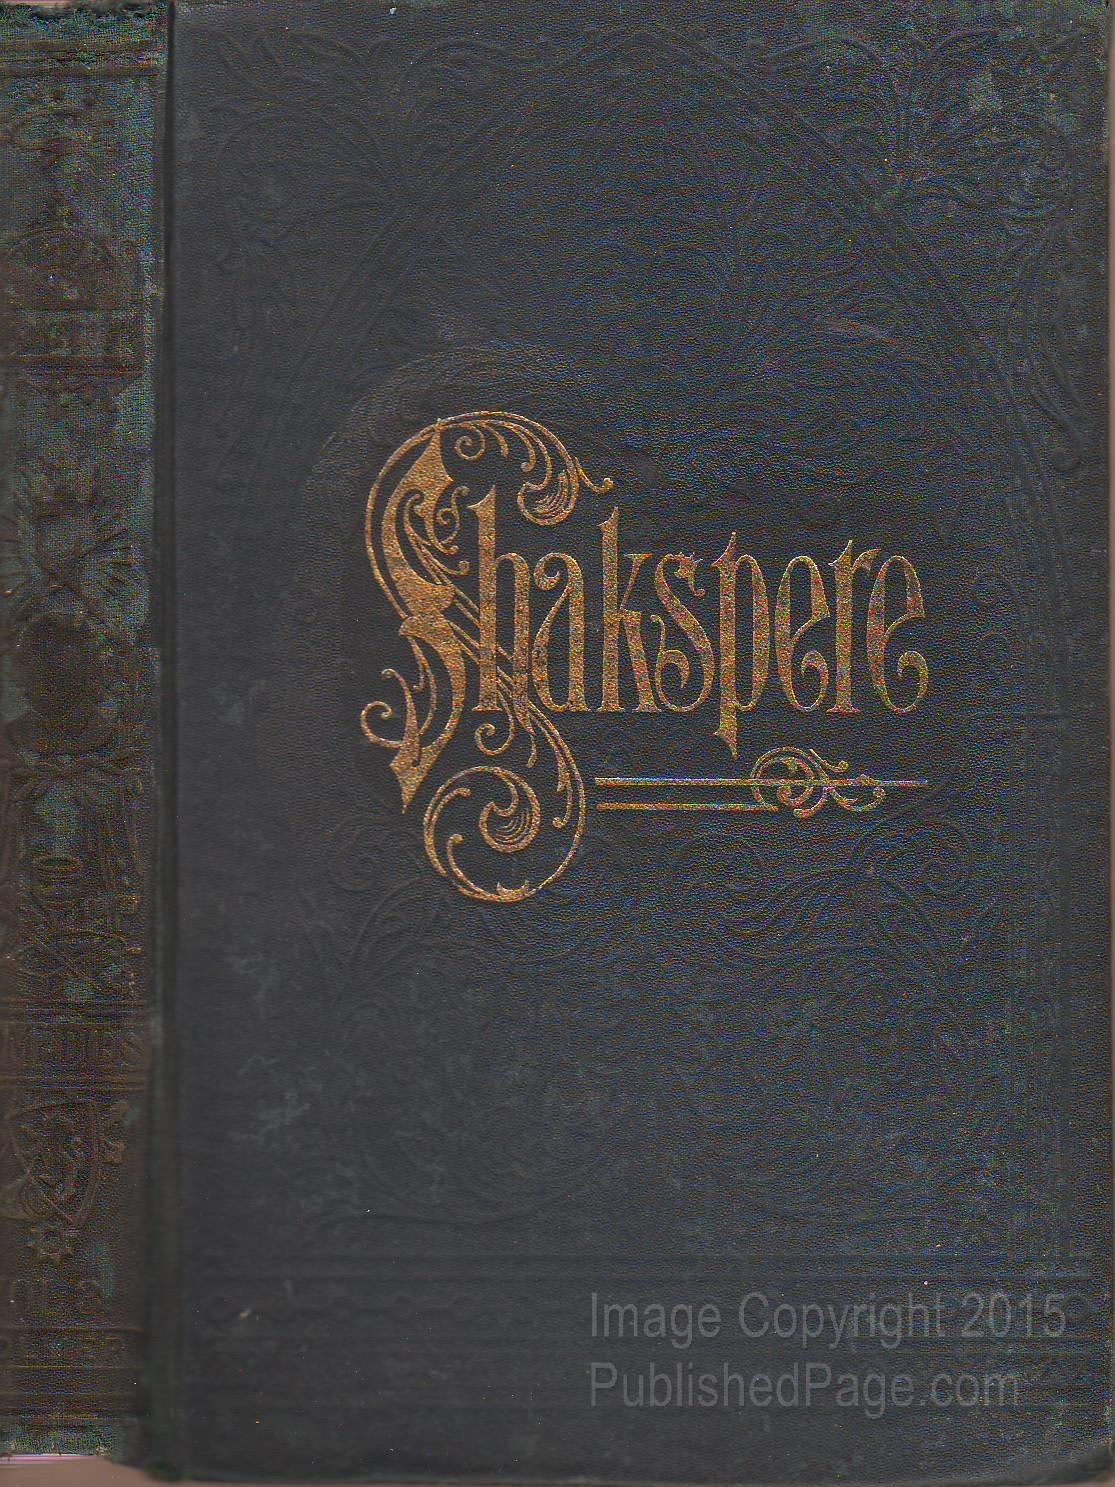 william shakespeare edited by charles knight abebooks